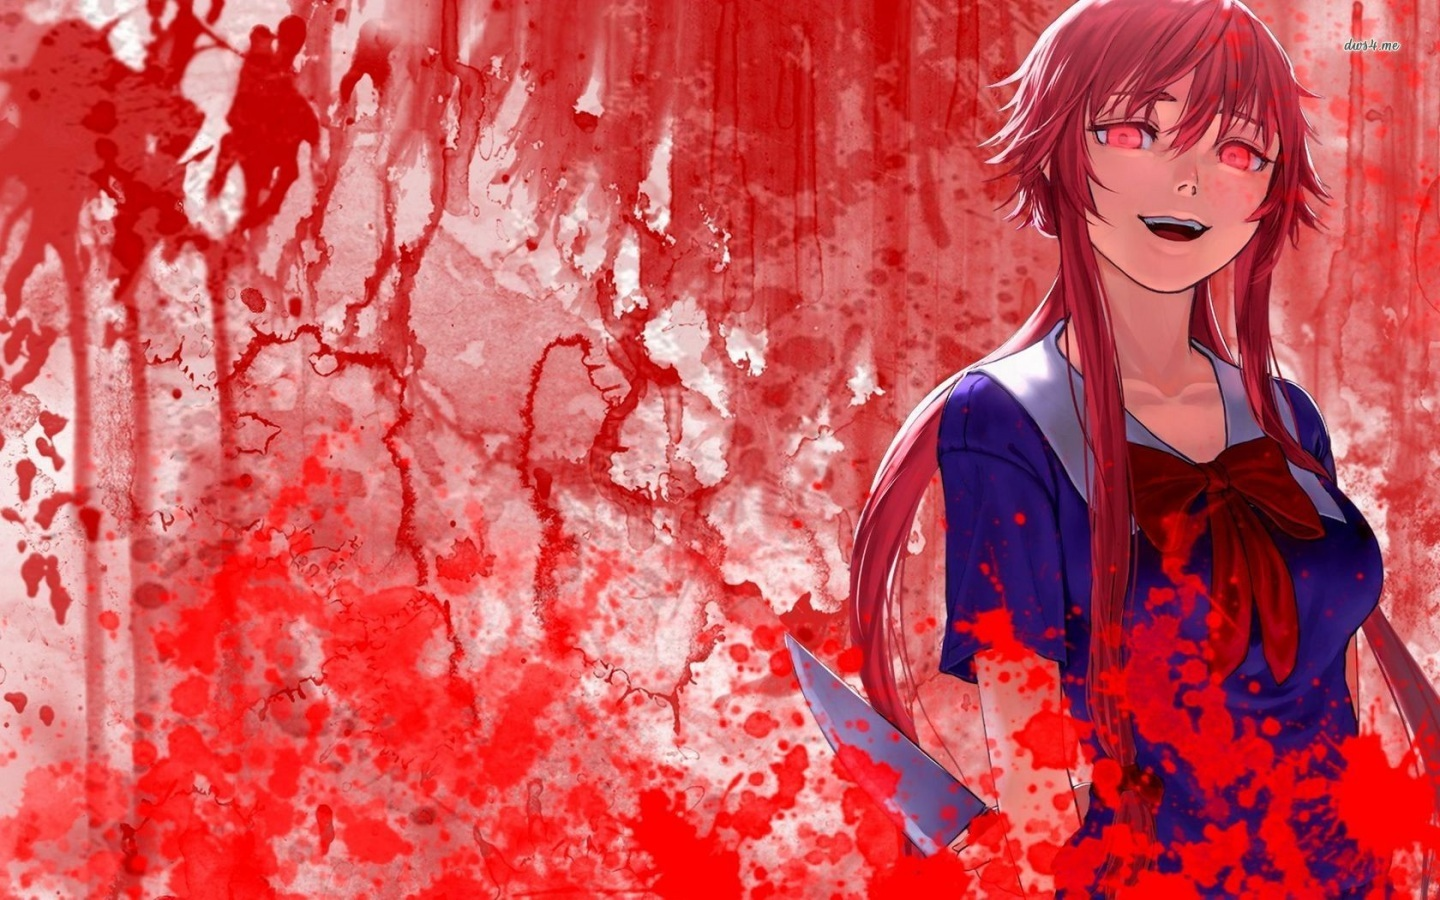 Gasai Yuno Wallpaper: Future Diary Wallpapers Yuno